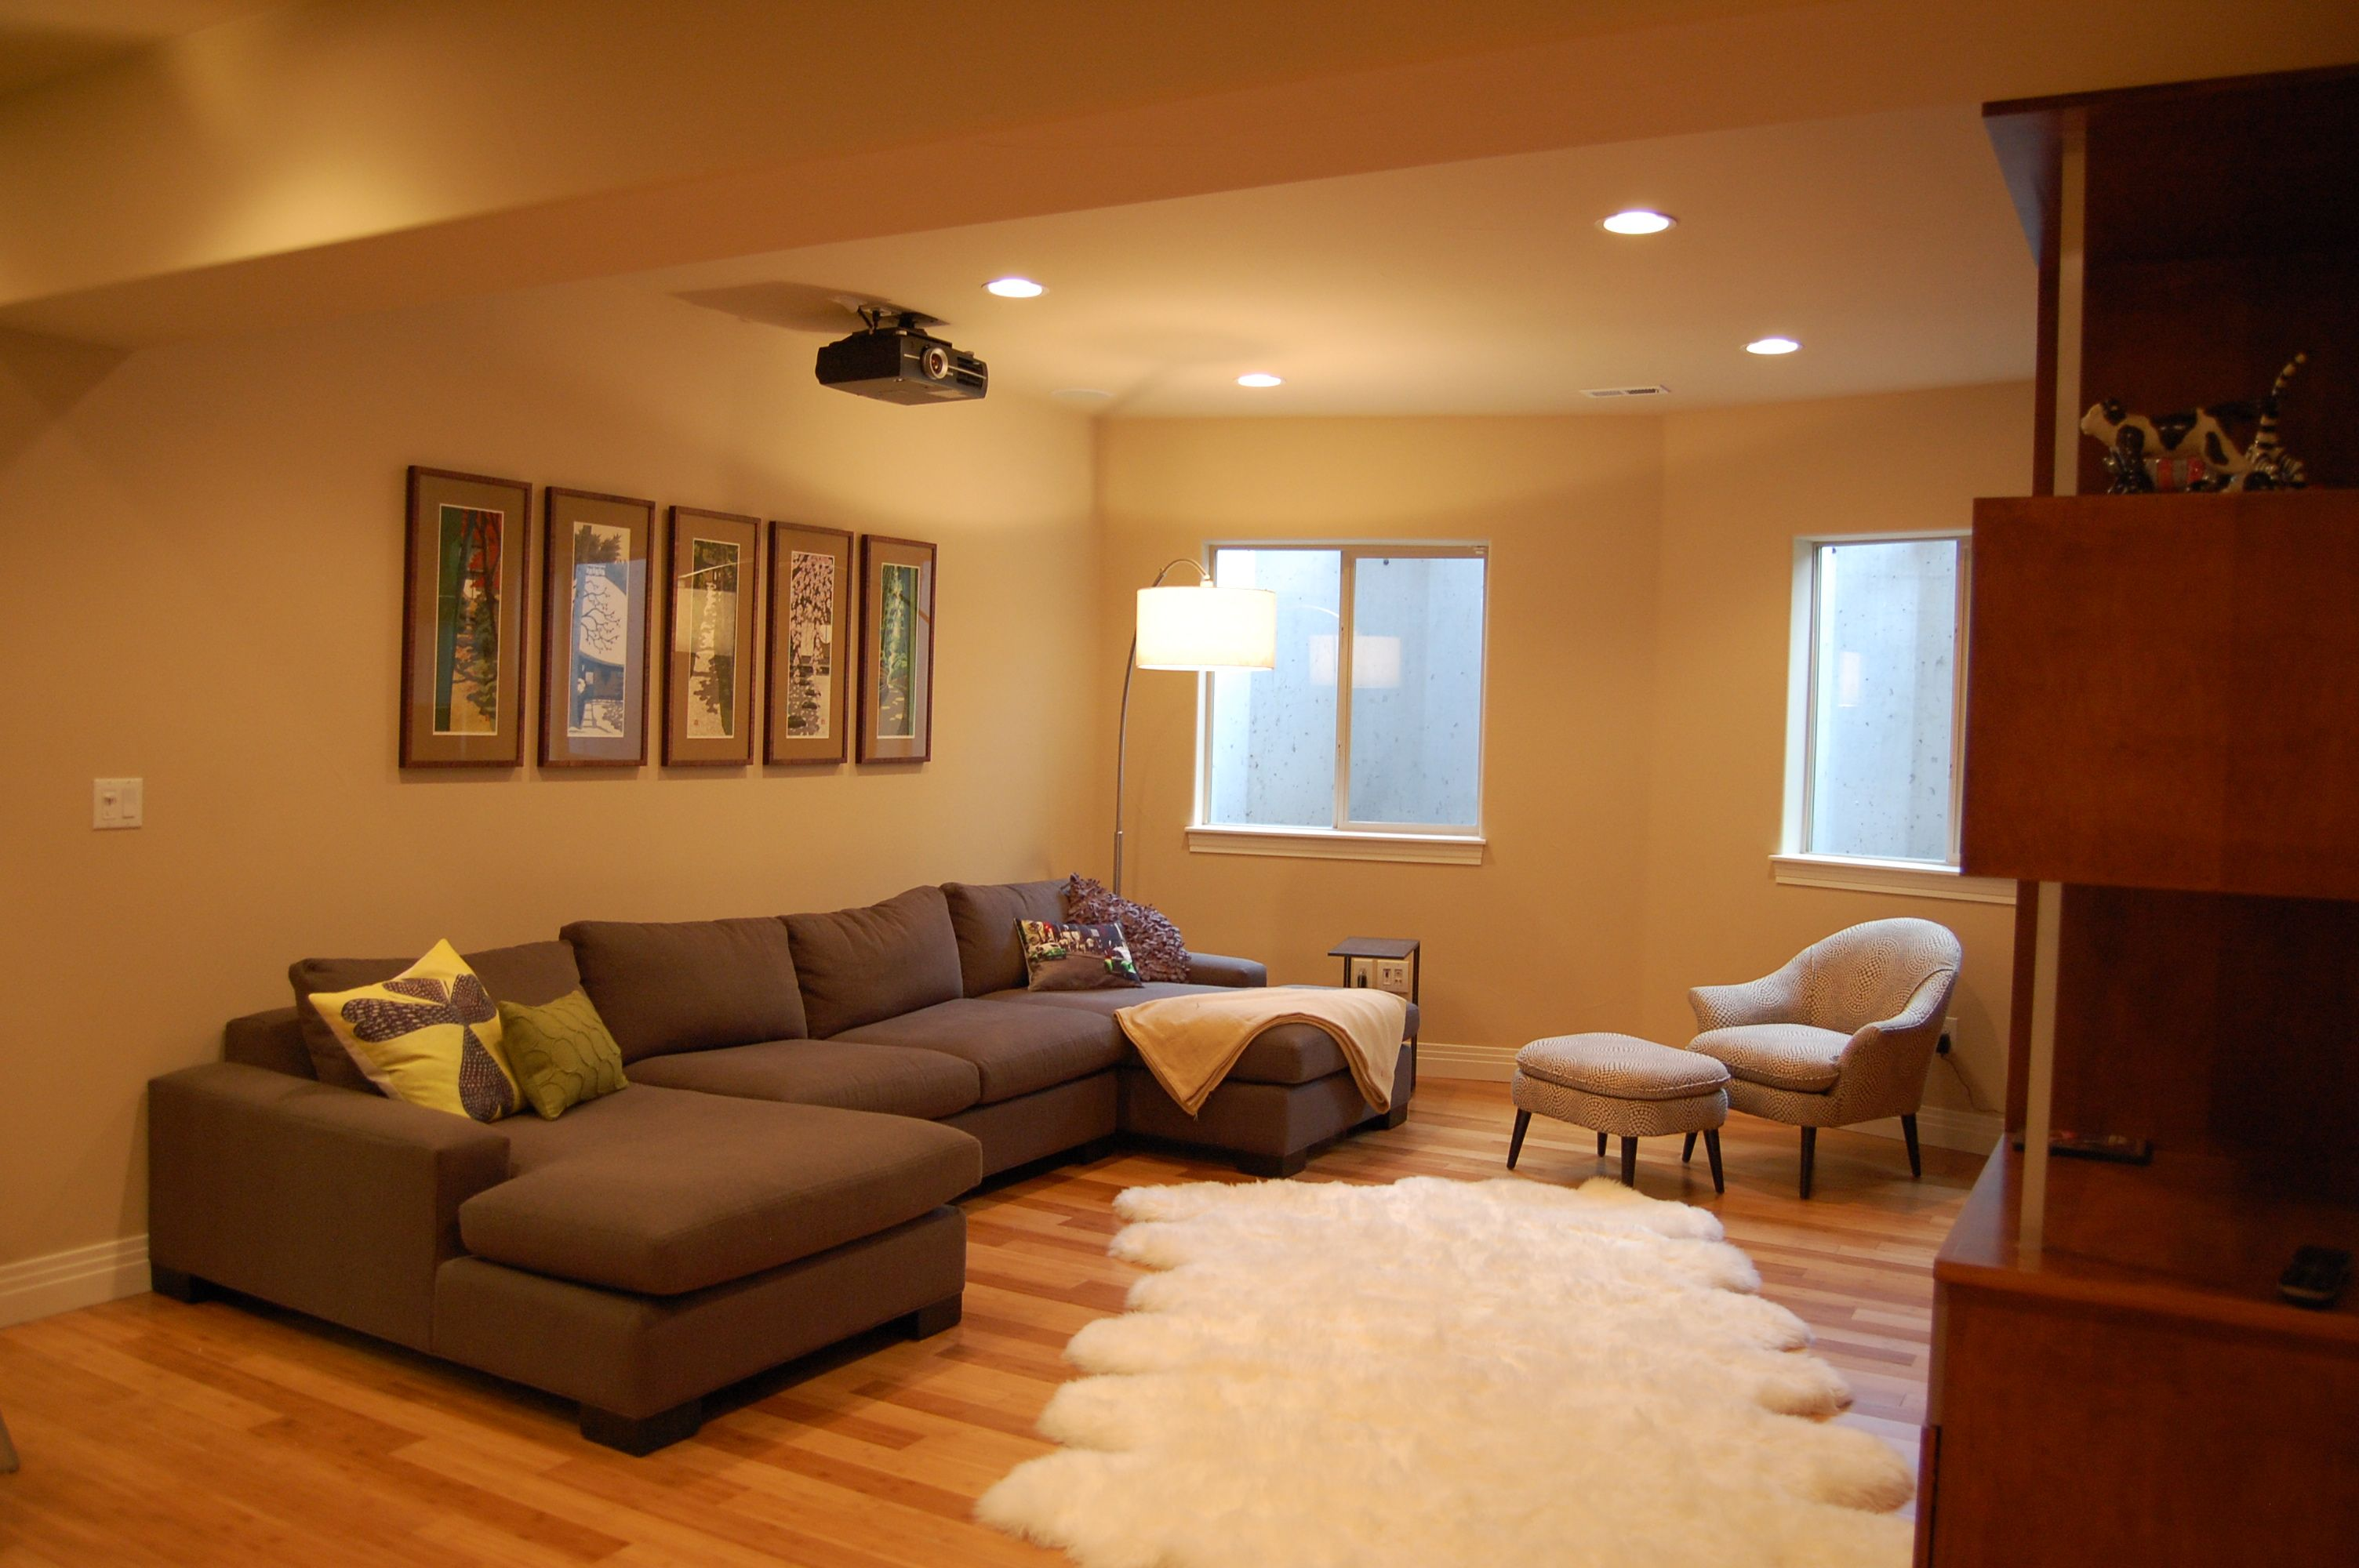 23 Most Popular Small Basement Ideas Decor and Remodel